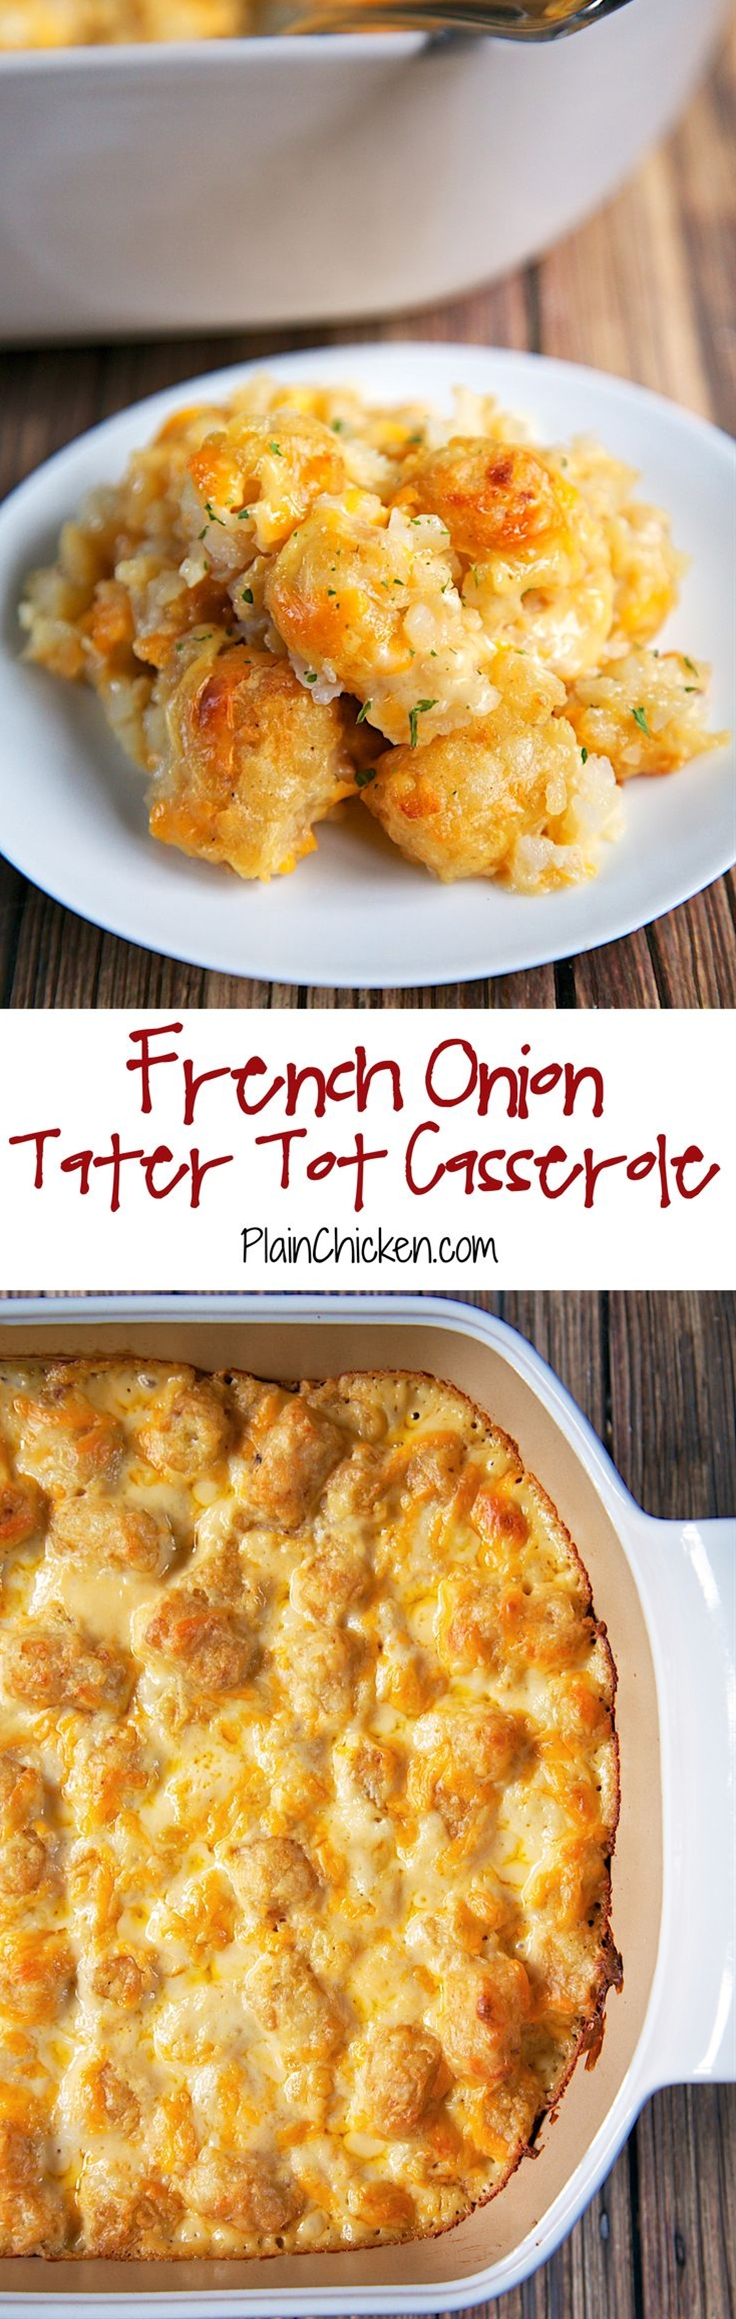 Tter tots, french onion dip, cream of chicken soup, cheese - LOVE this casserole! Can make ahead and freezer for later. You can even split it between two foil pans - one for now and one for the freezer. Super easy side dish with only 4 ingredients that tastes great!\n\n